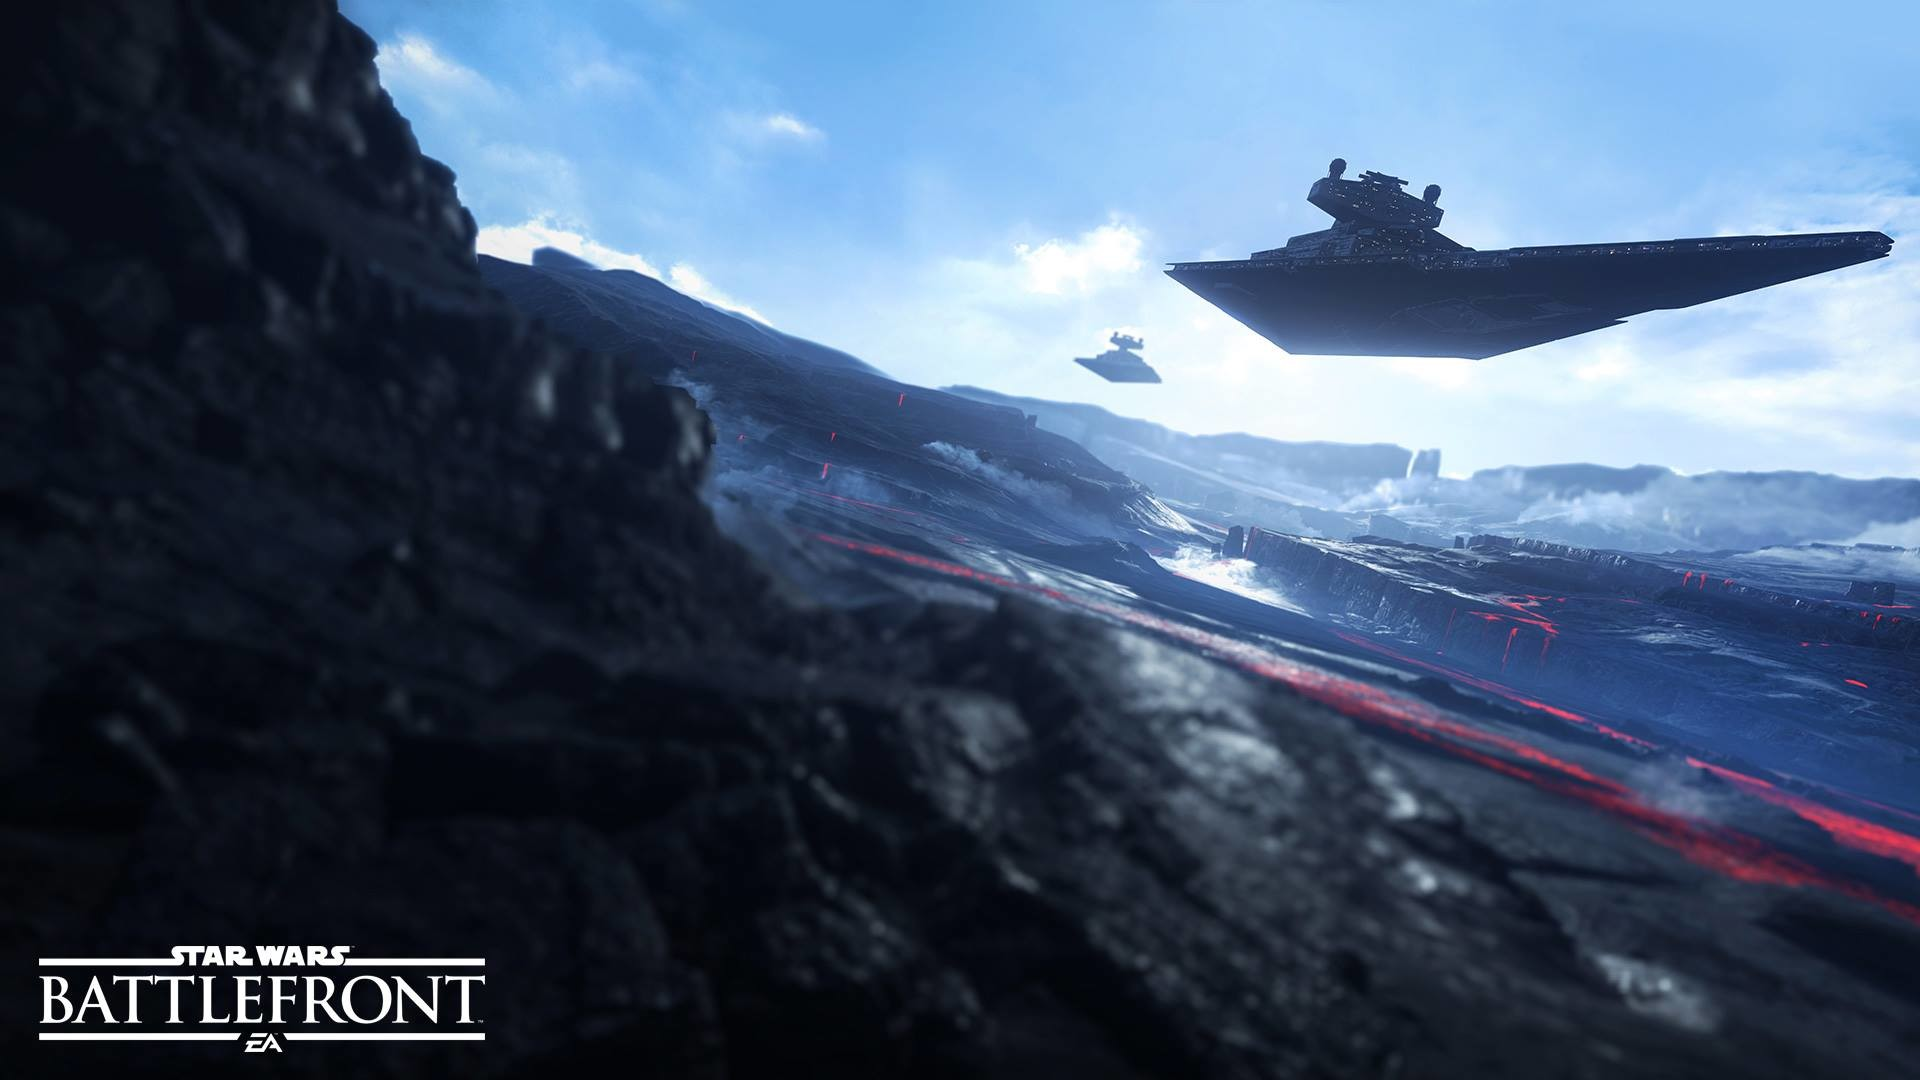 Here Are Some Glorious Star Wars Battlefront HD Wallpapers – GameSpot